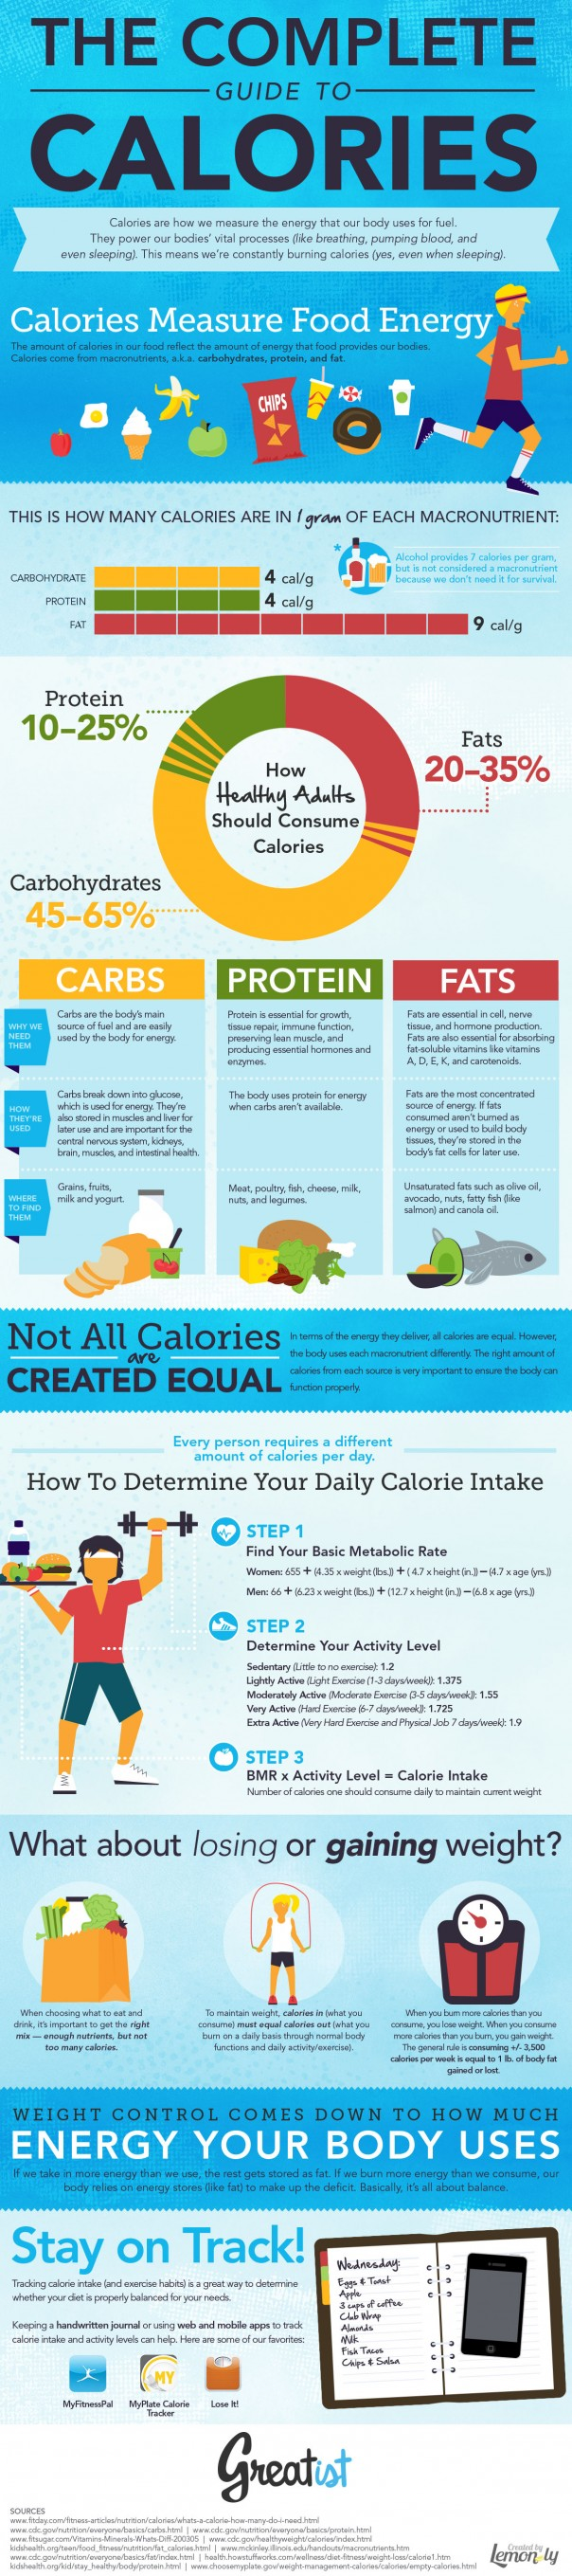 The-Complete-Guide-to-Calories-e1348595382955